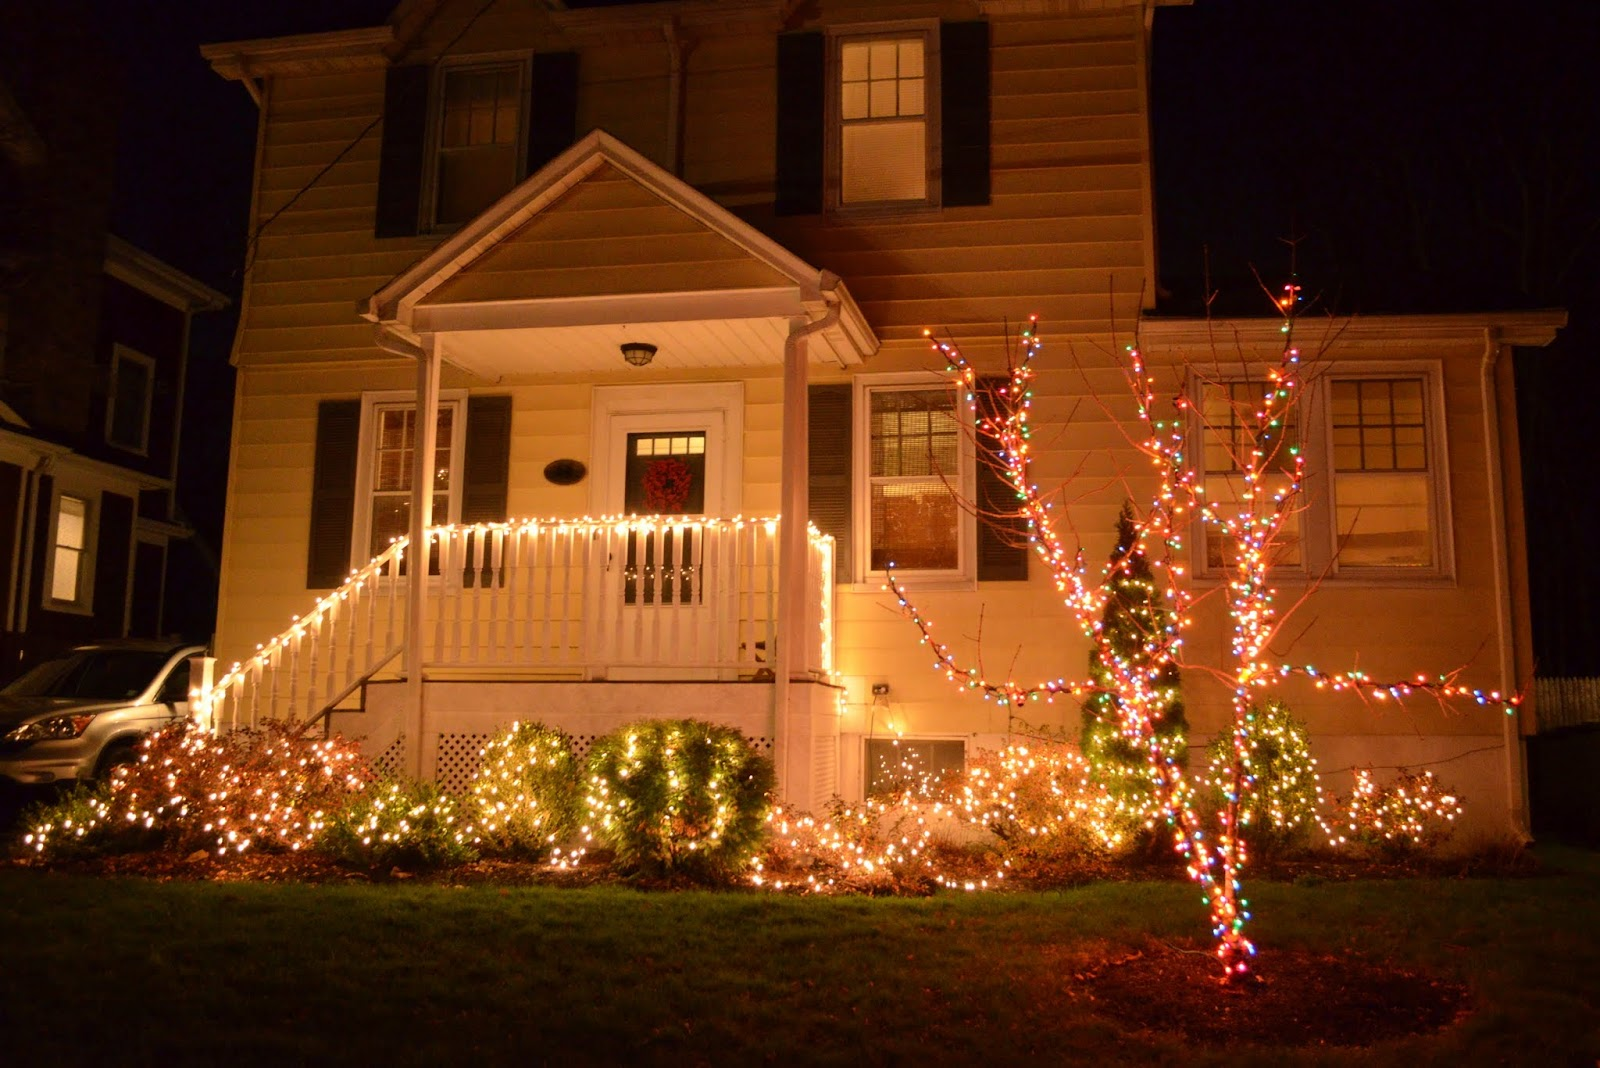 In The Little Yellow House Outdoor Christmas Lights - Outdoor Christmas Tree Made Of Lights